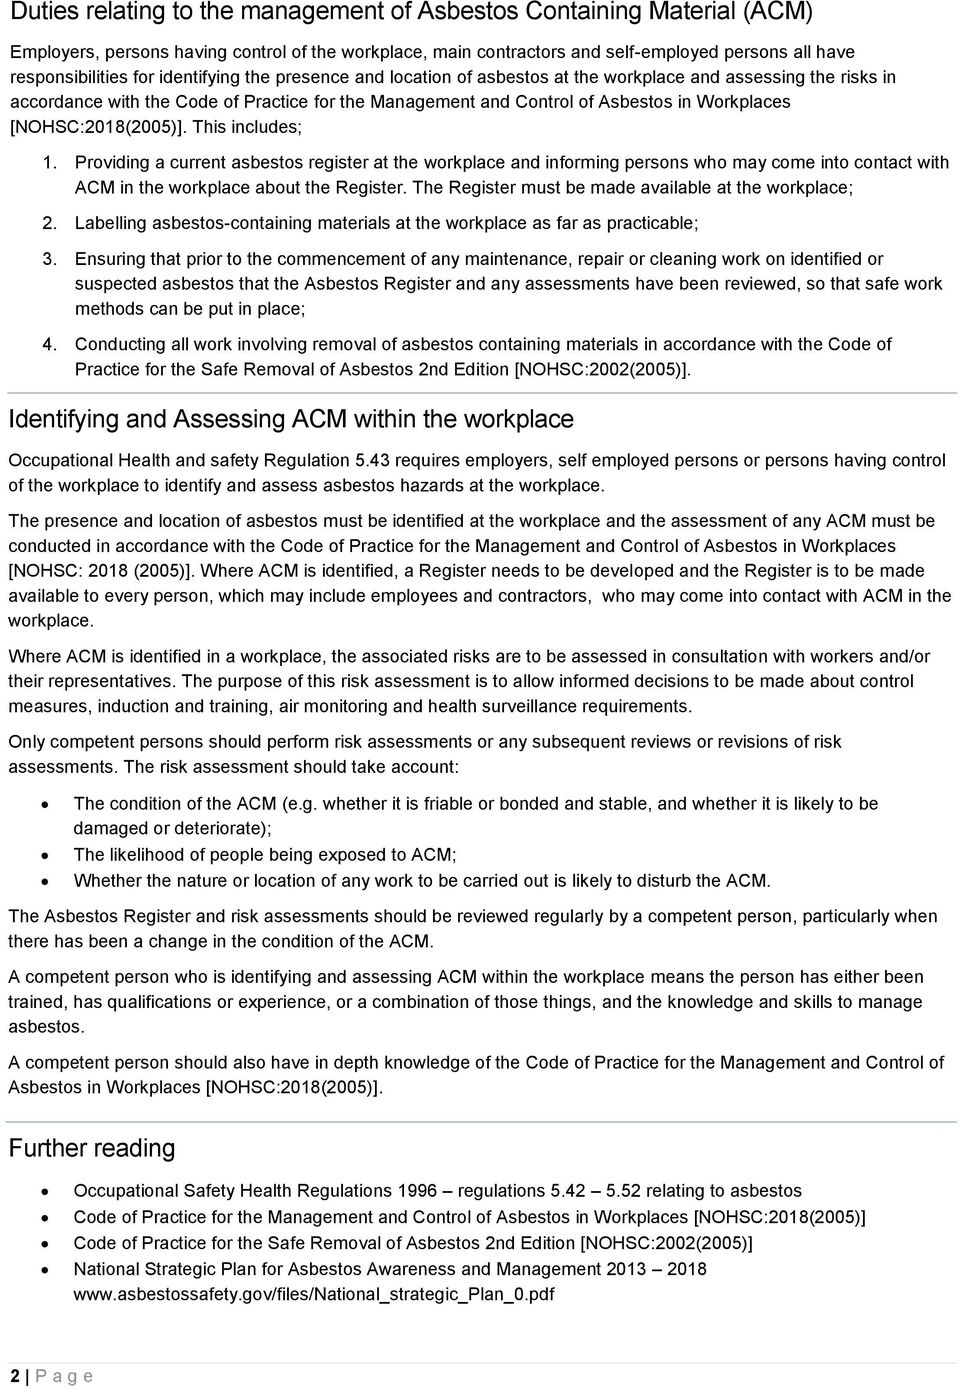 [NOHSC:2018(2005)]. This includes; 1. Providing a current asbestos register at the workplace and informing persons who may come into contact with ACM in the workplace about the Register.